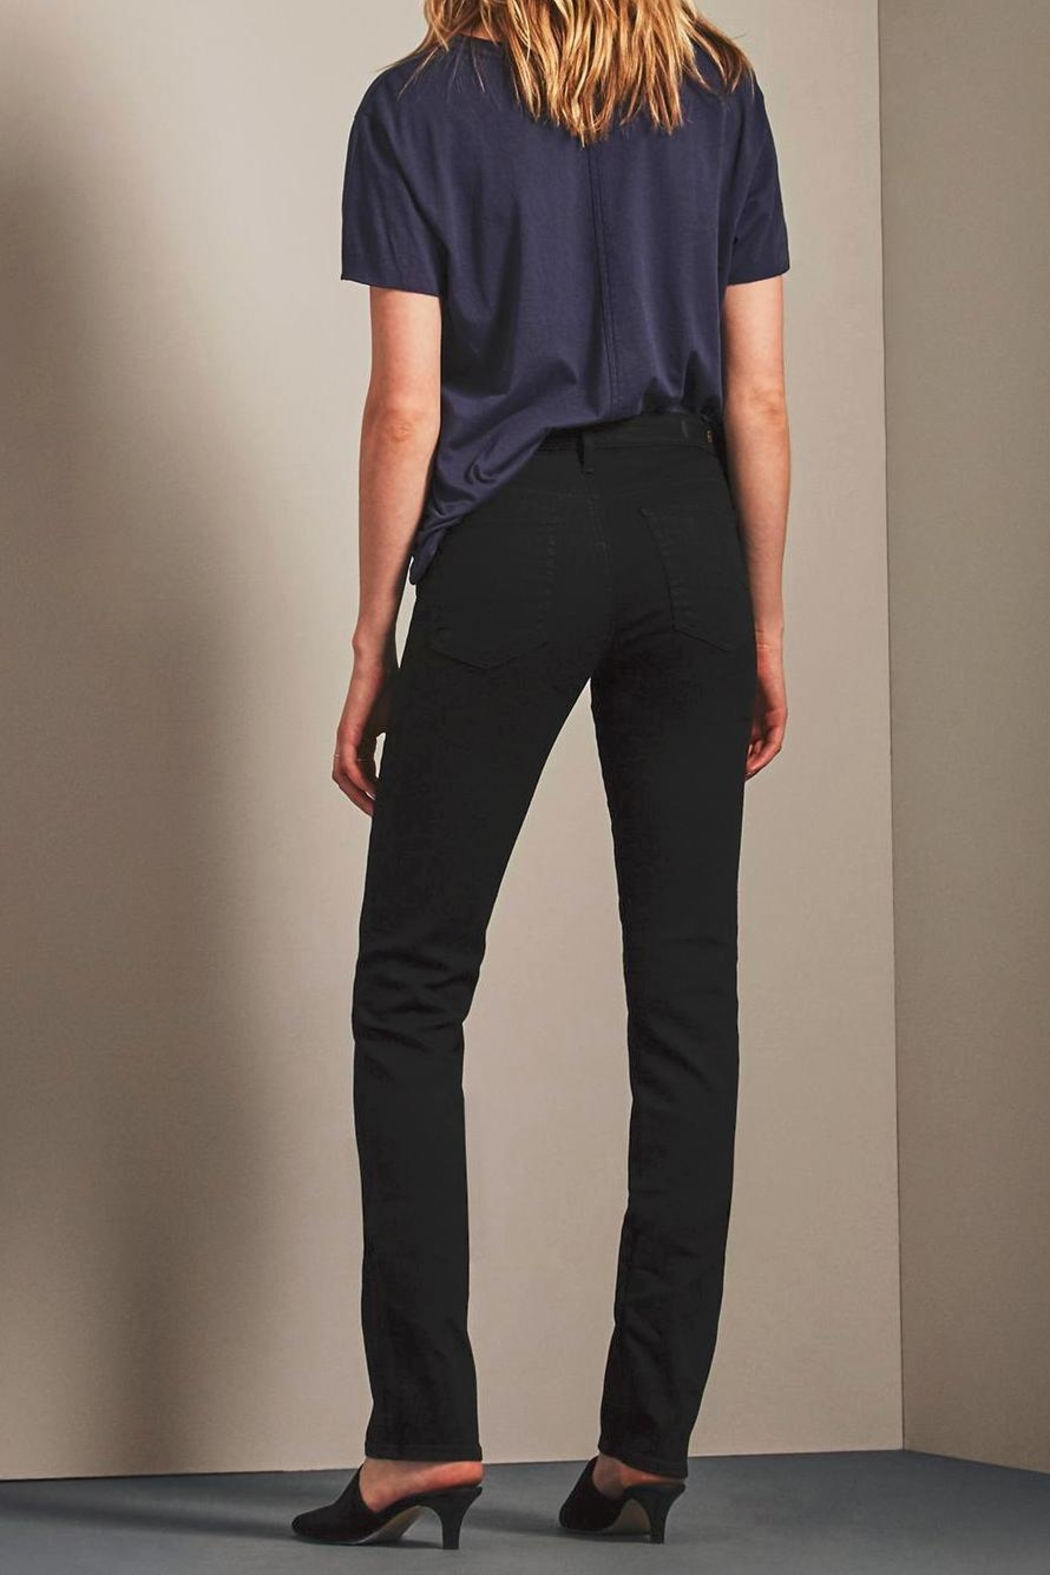 AG Adriano Goldschmied Harper Overdye Black Pants - Side Cropped Image